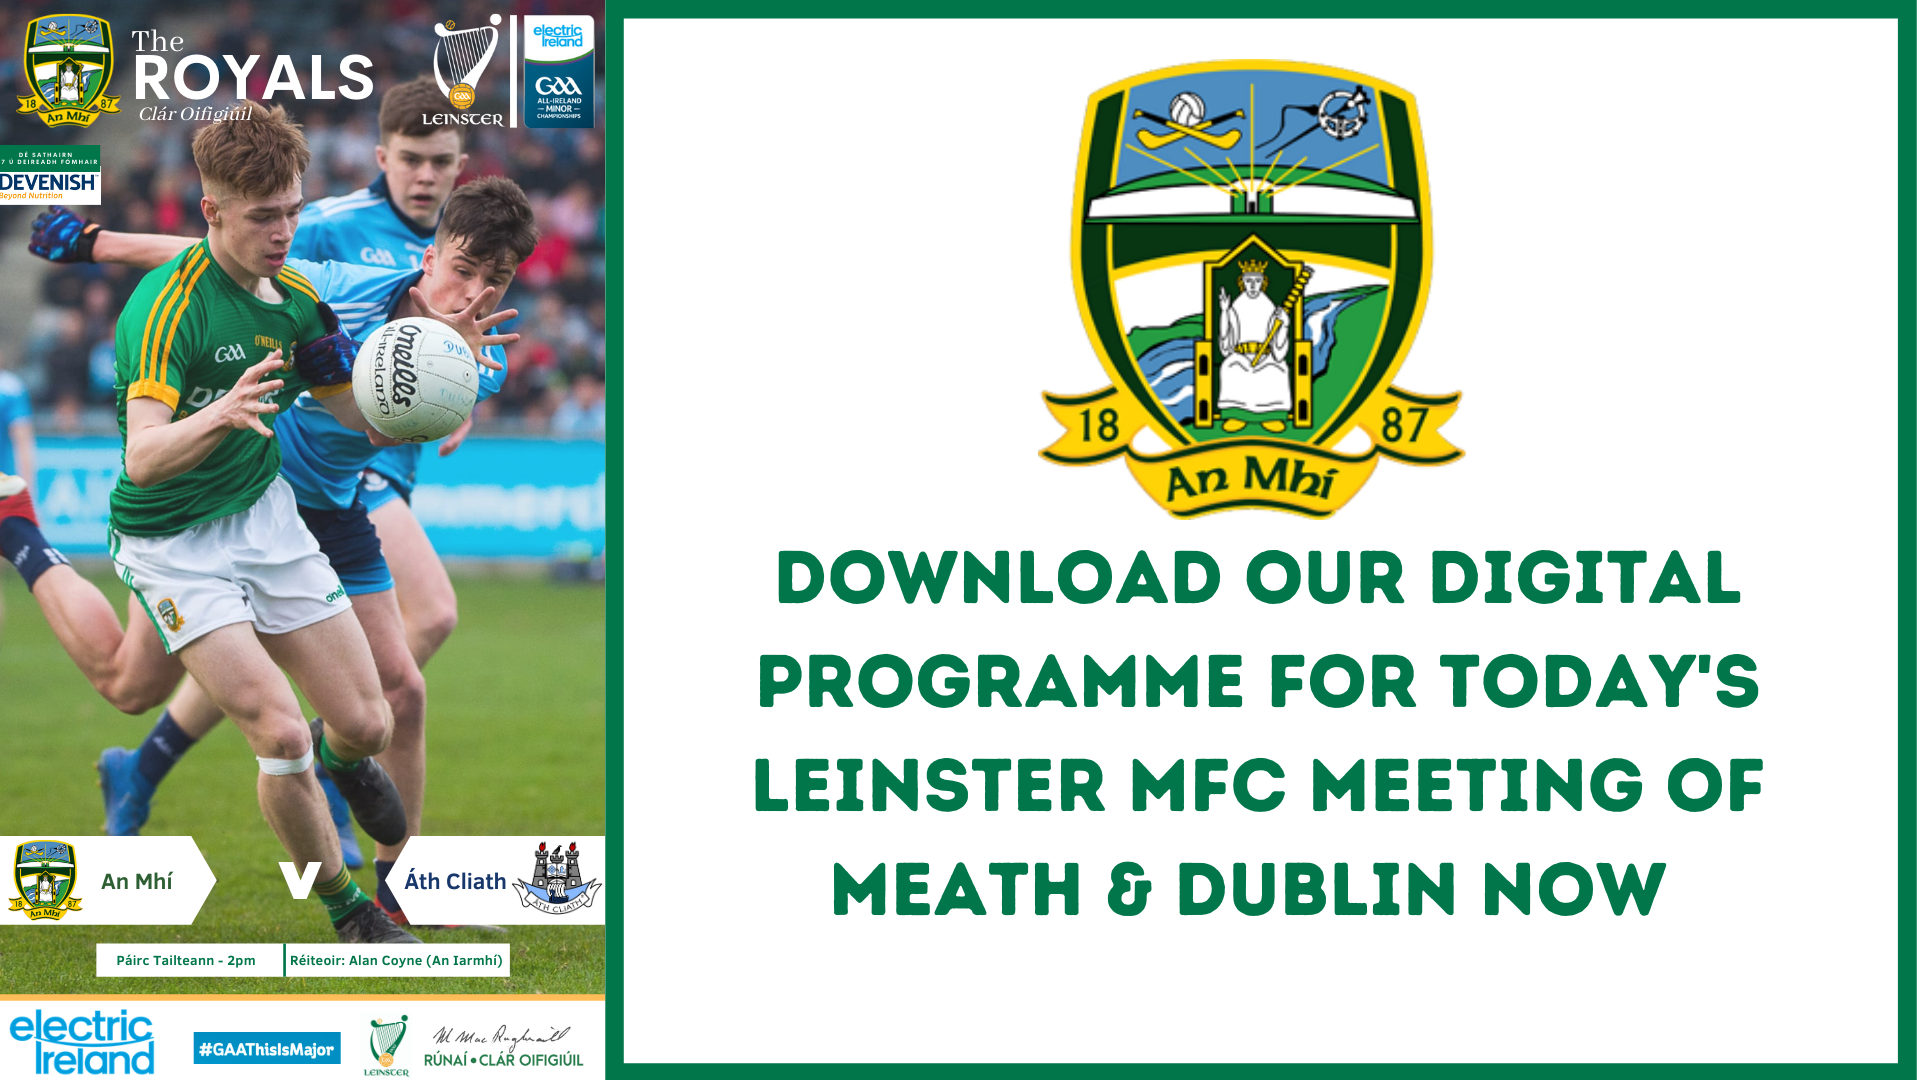 Get your Leinster MFC Championship programme now